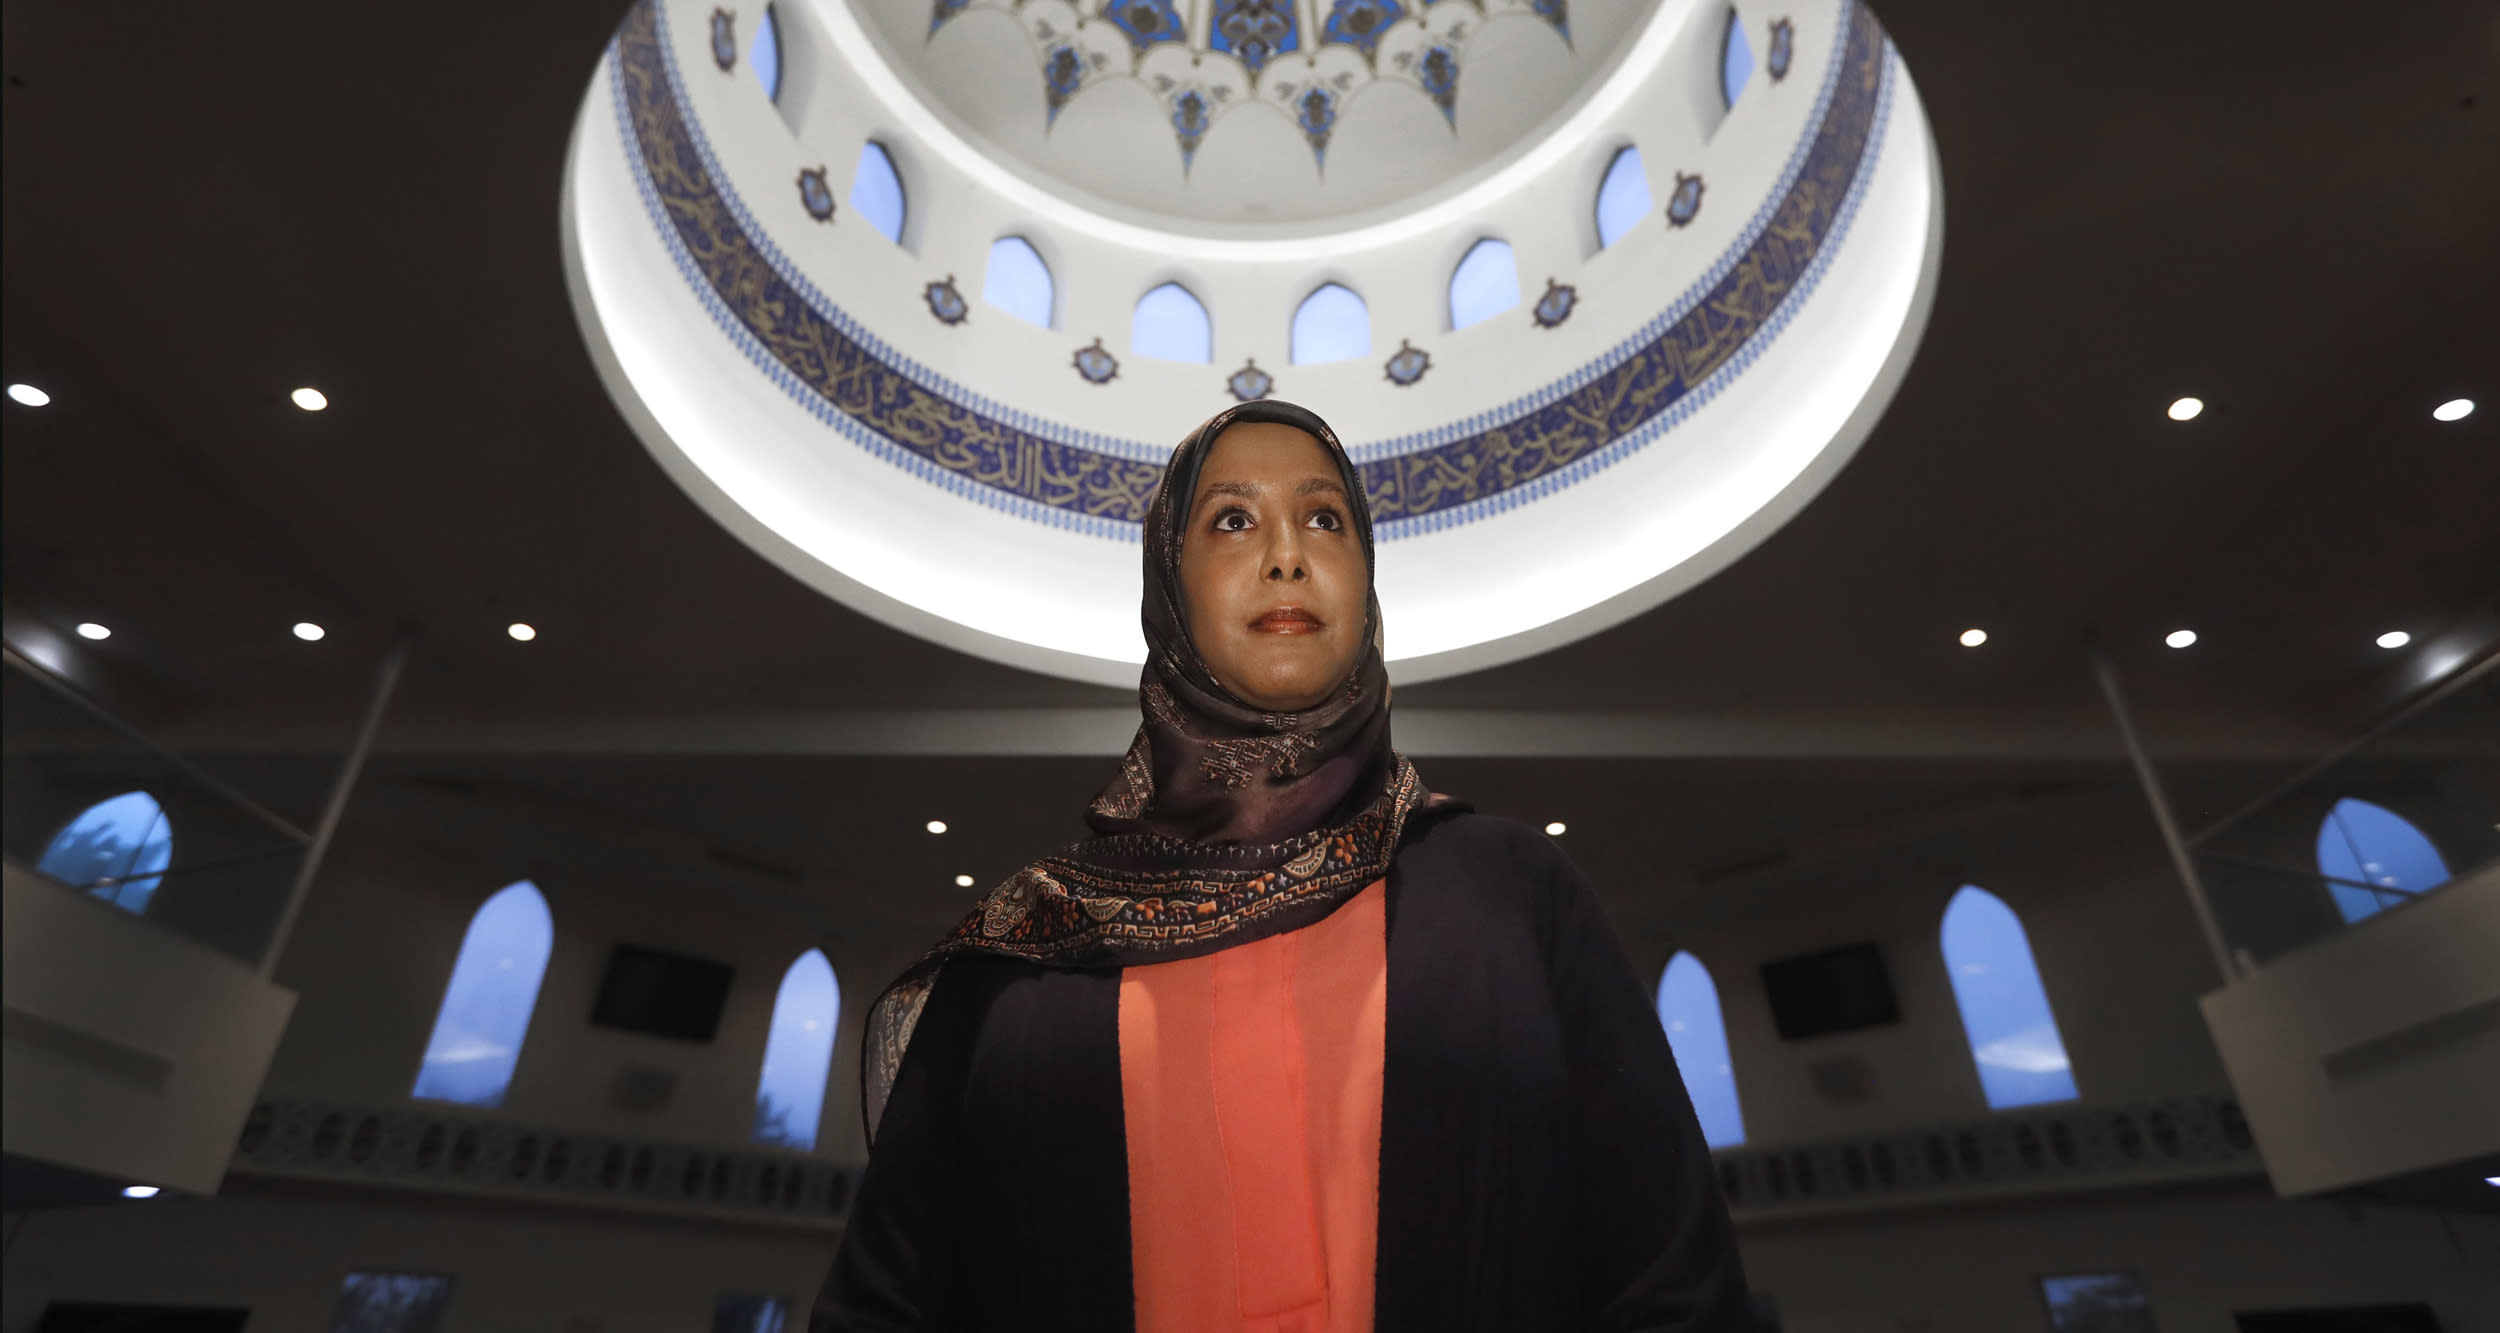 After George Floyd, raw talk and racial reckoning among U.S. Muslims